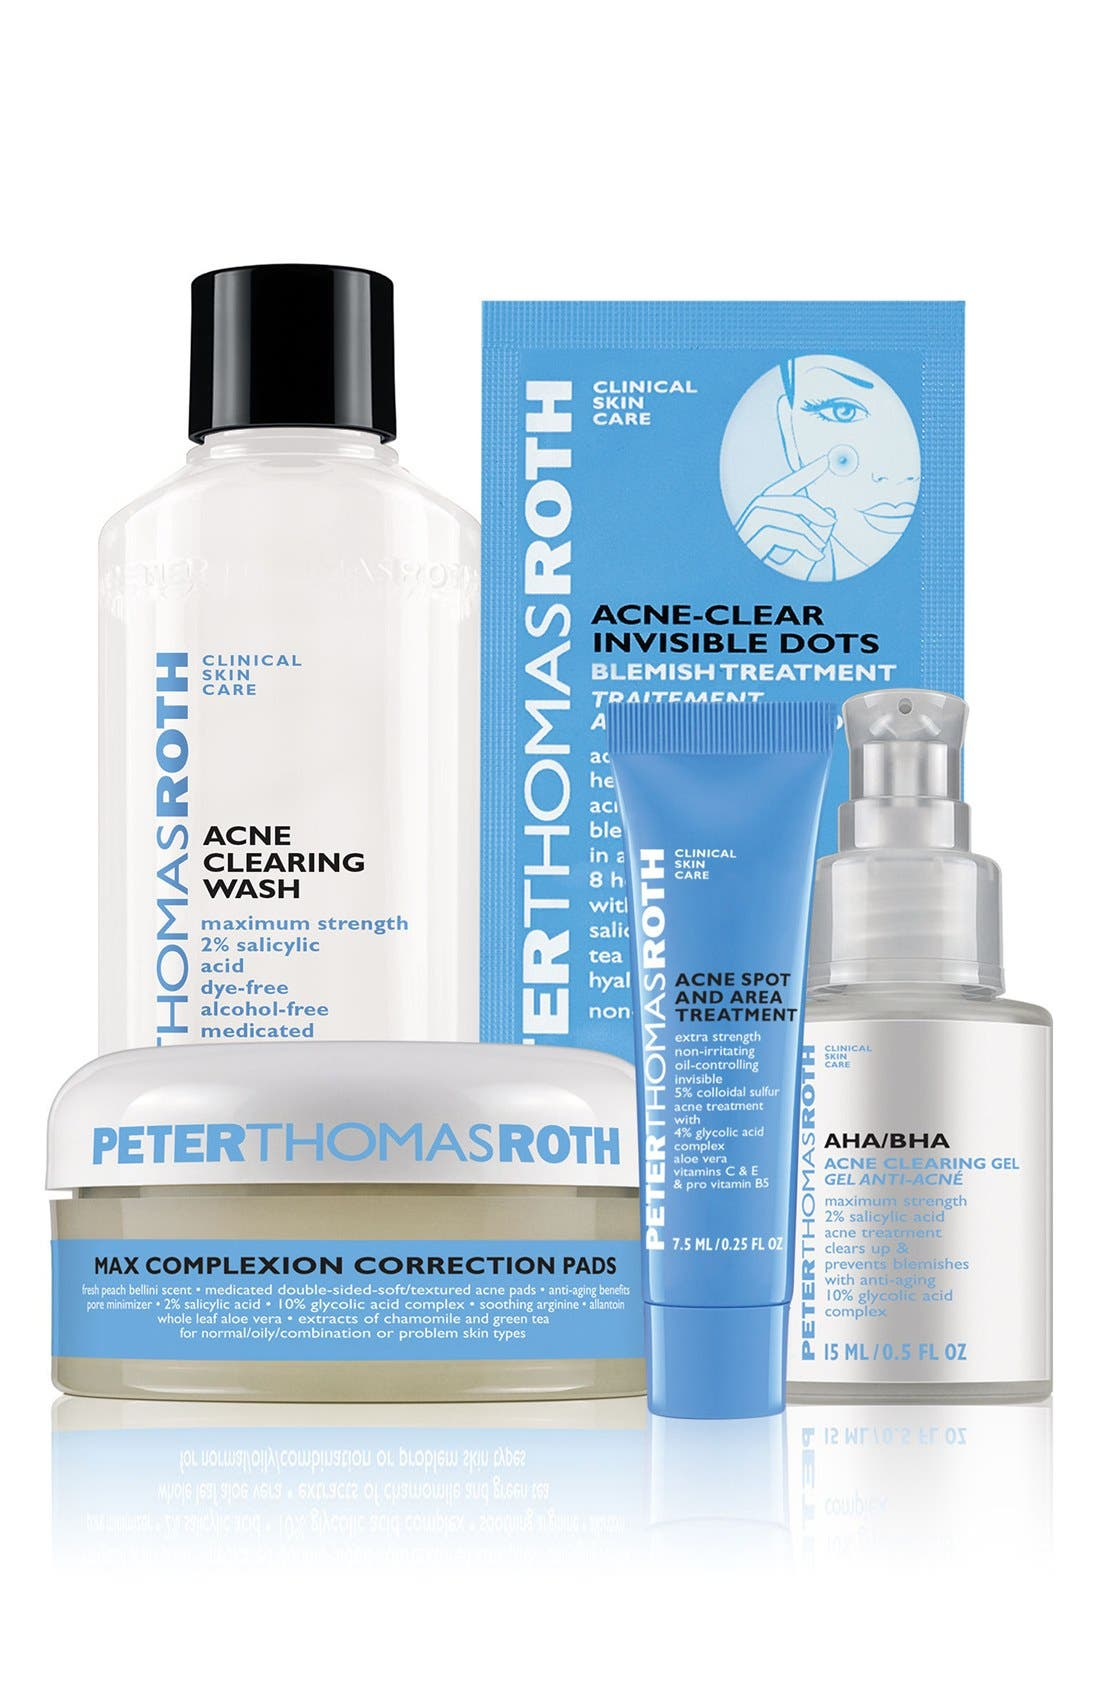 Peter Thomas Roth | Nordstrom